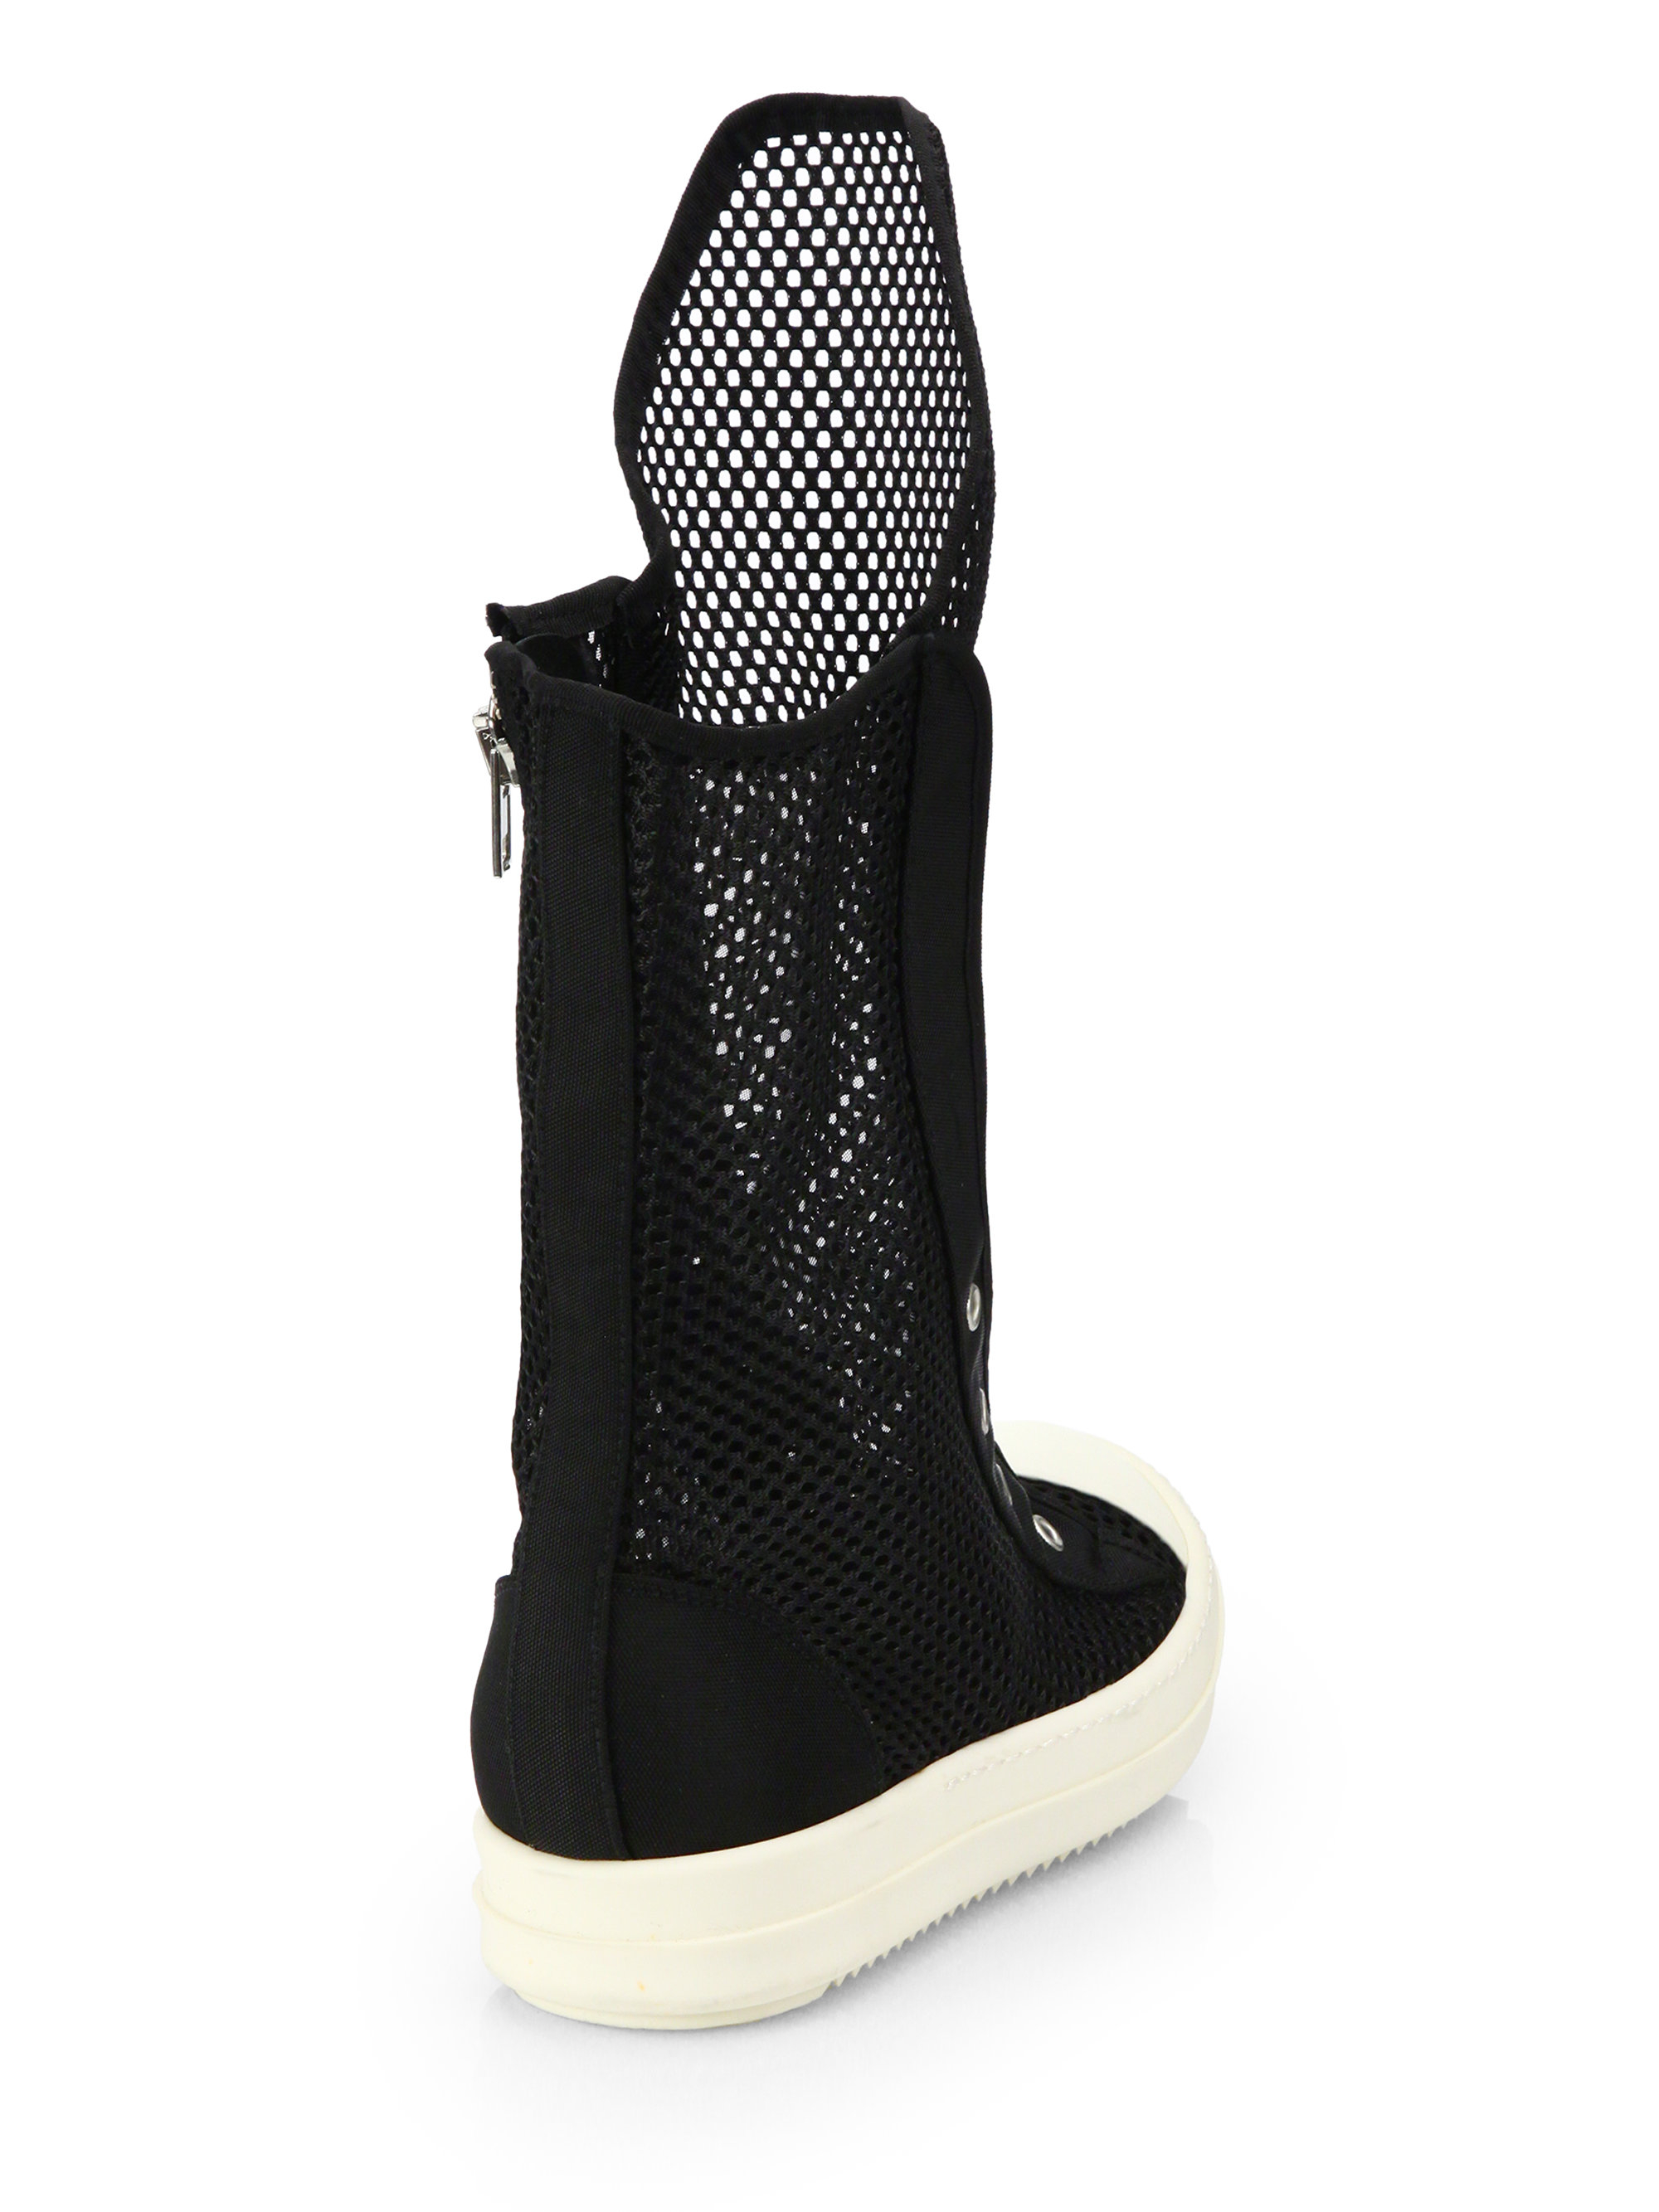 mid-calf sneaker boots - Black Rick Owens Shop Offer For Sale Cheap Sale The Cheapest Cheap Sale Pick A Best CHzPWSTy0